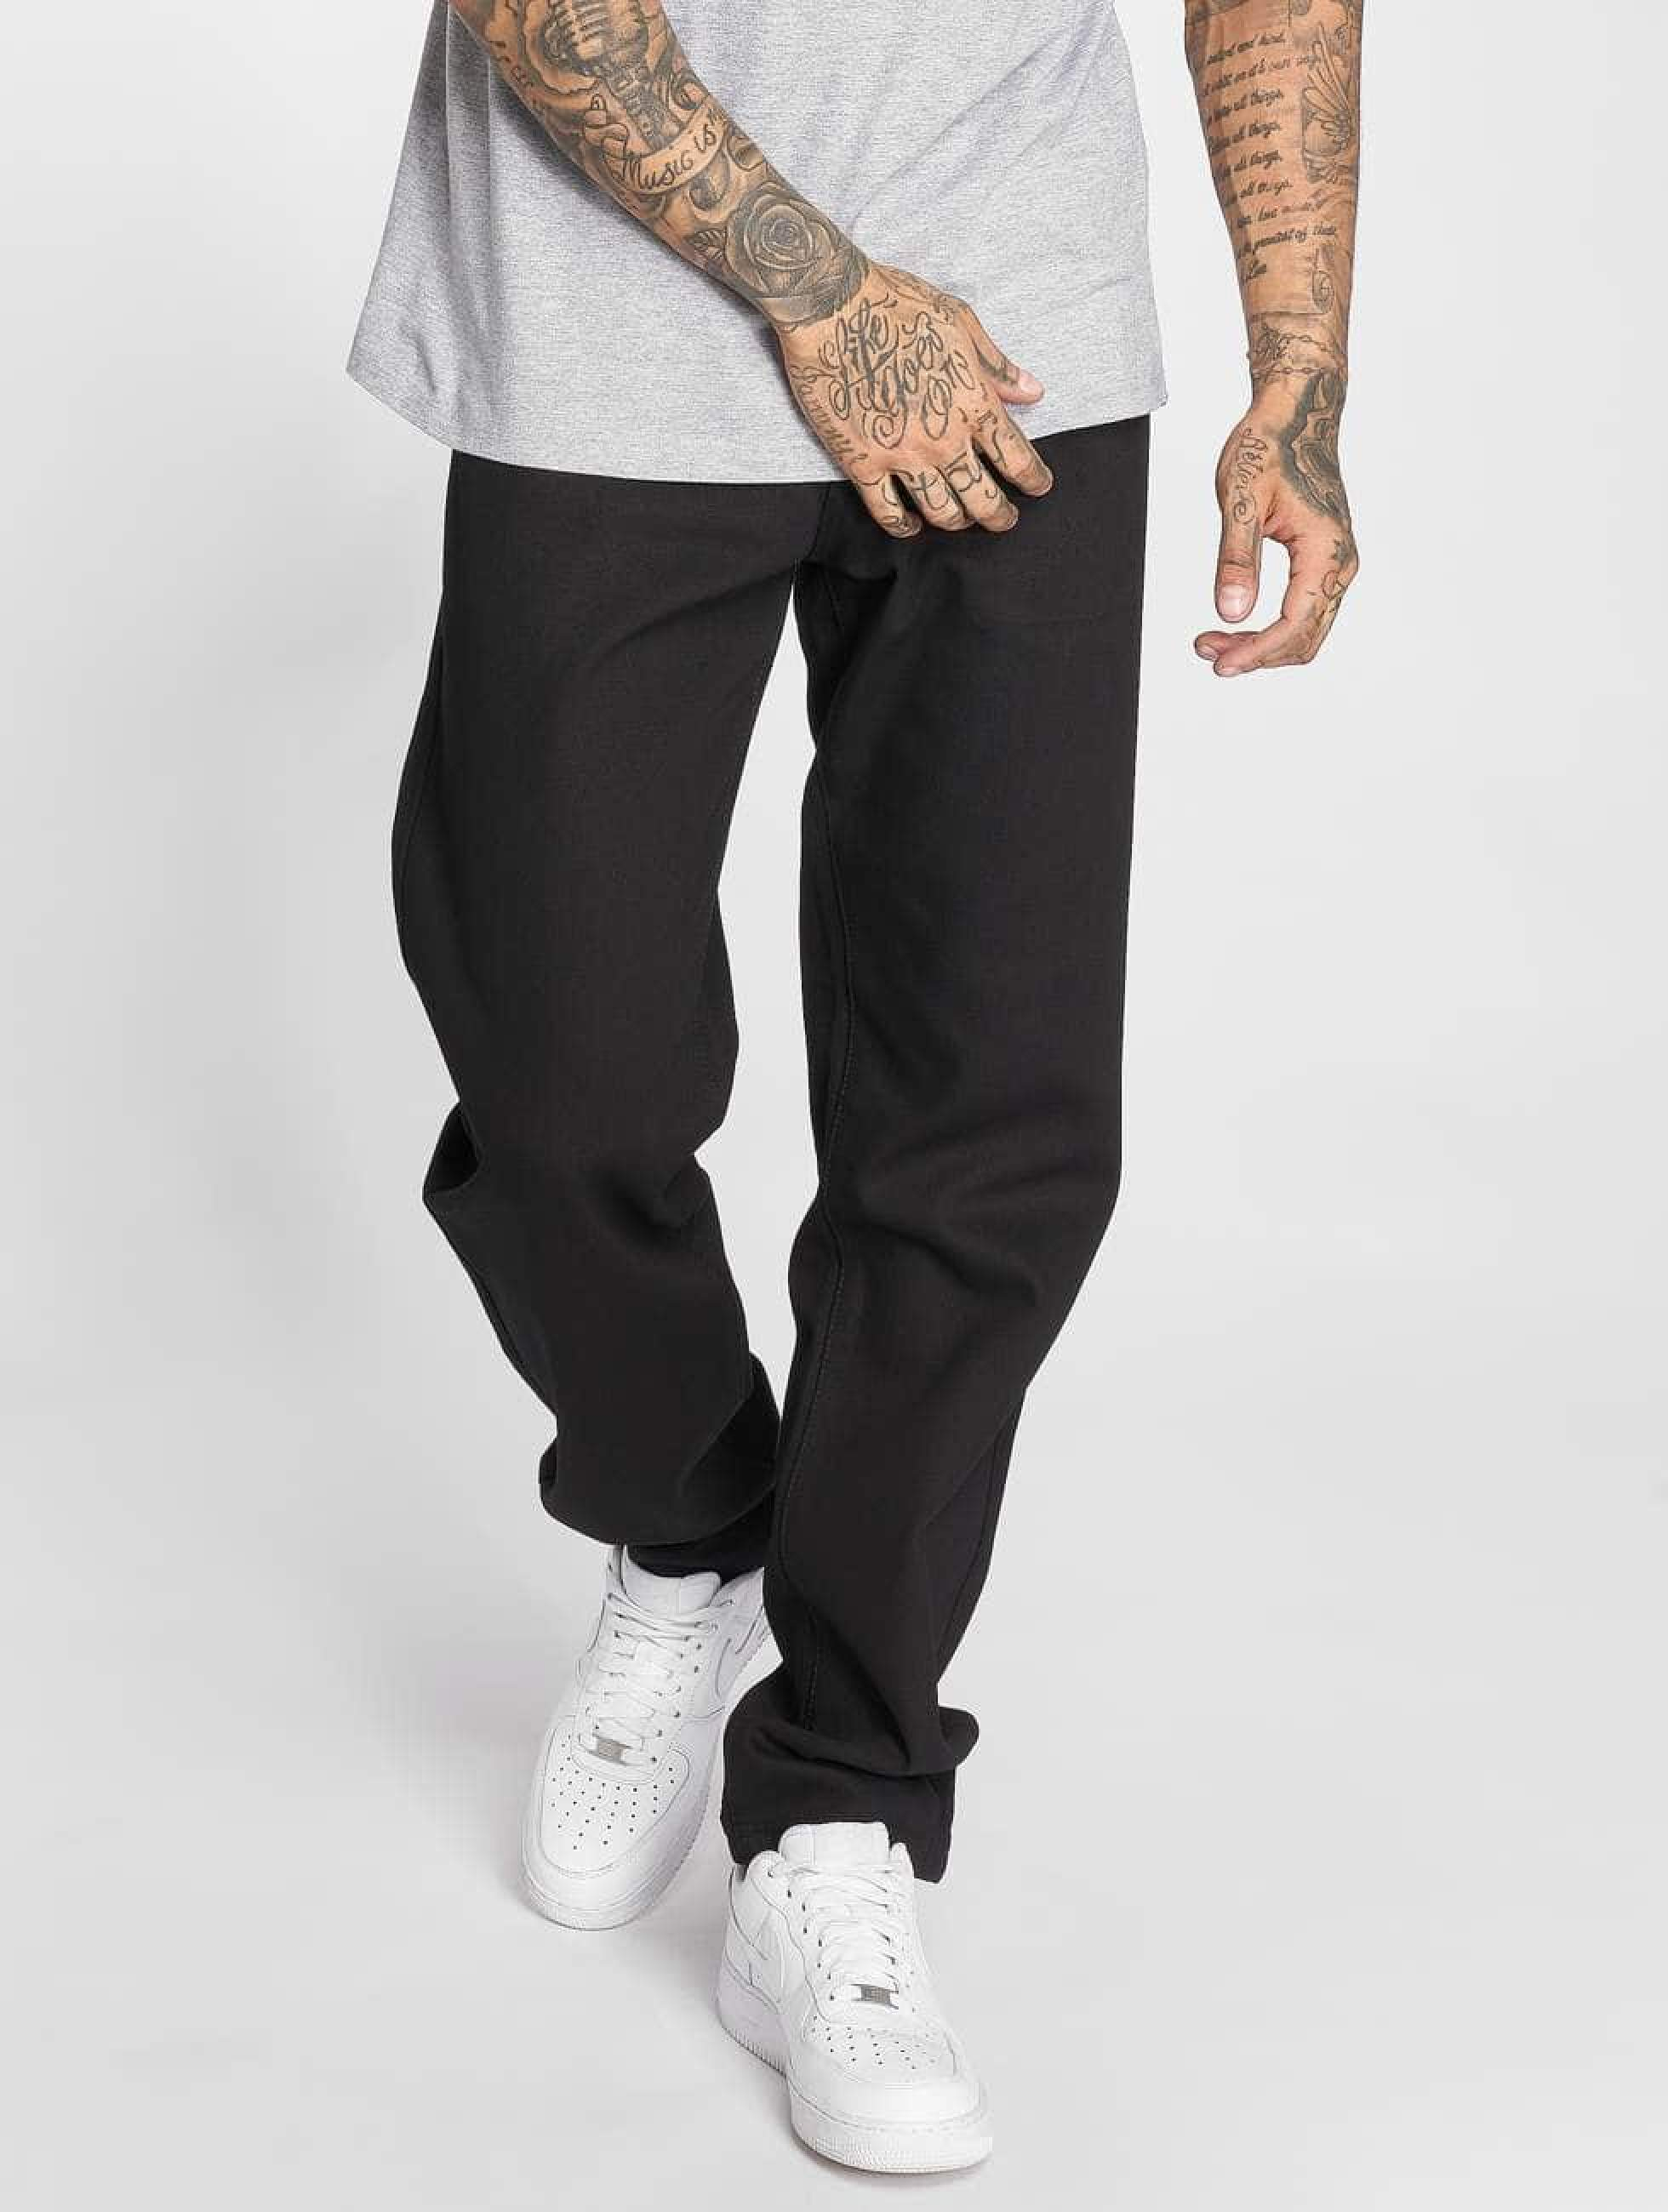 Thug Life / Carrot Fit Jeans B . Denim in black W 32 L 34